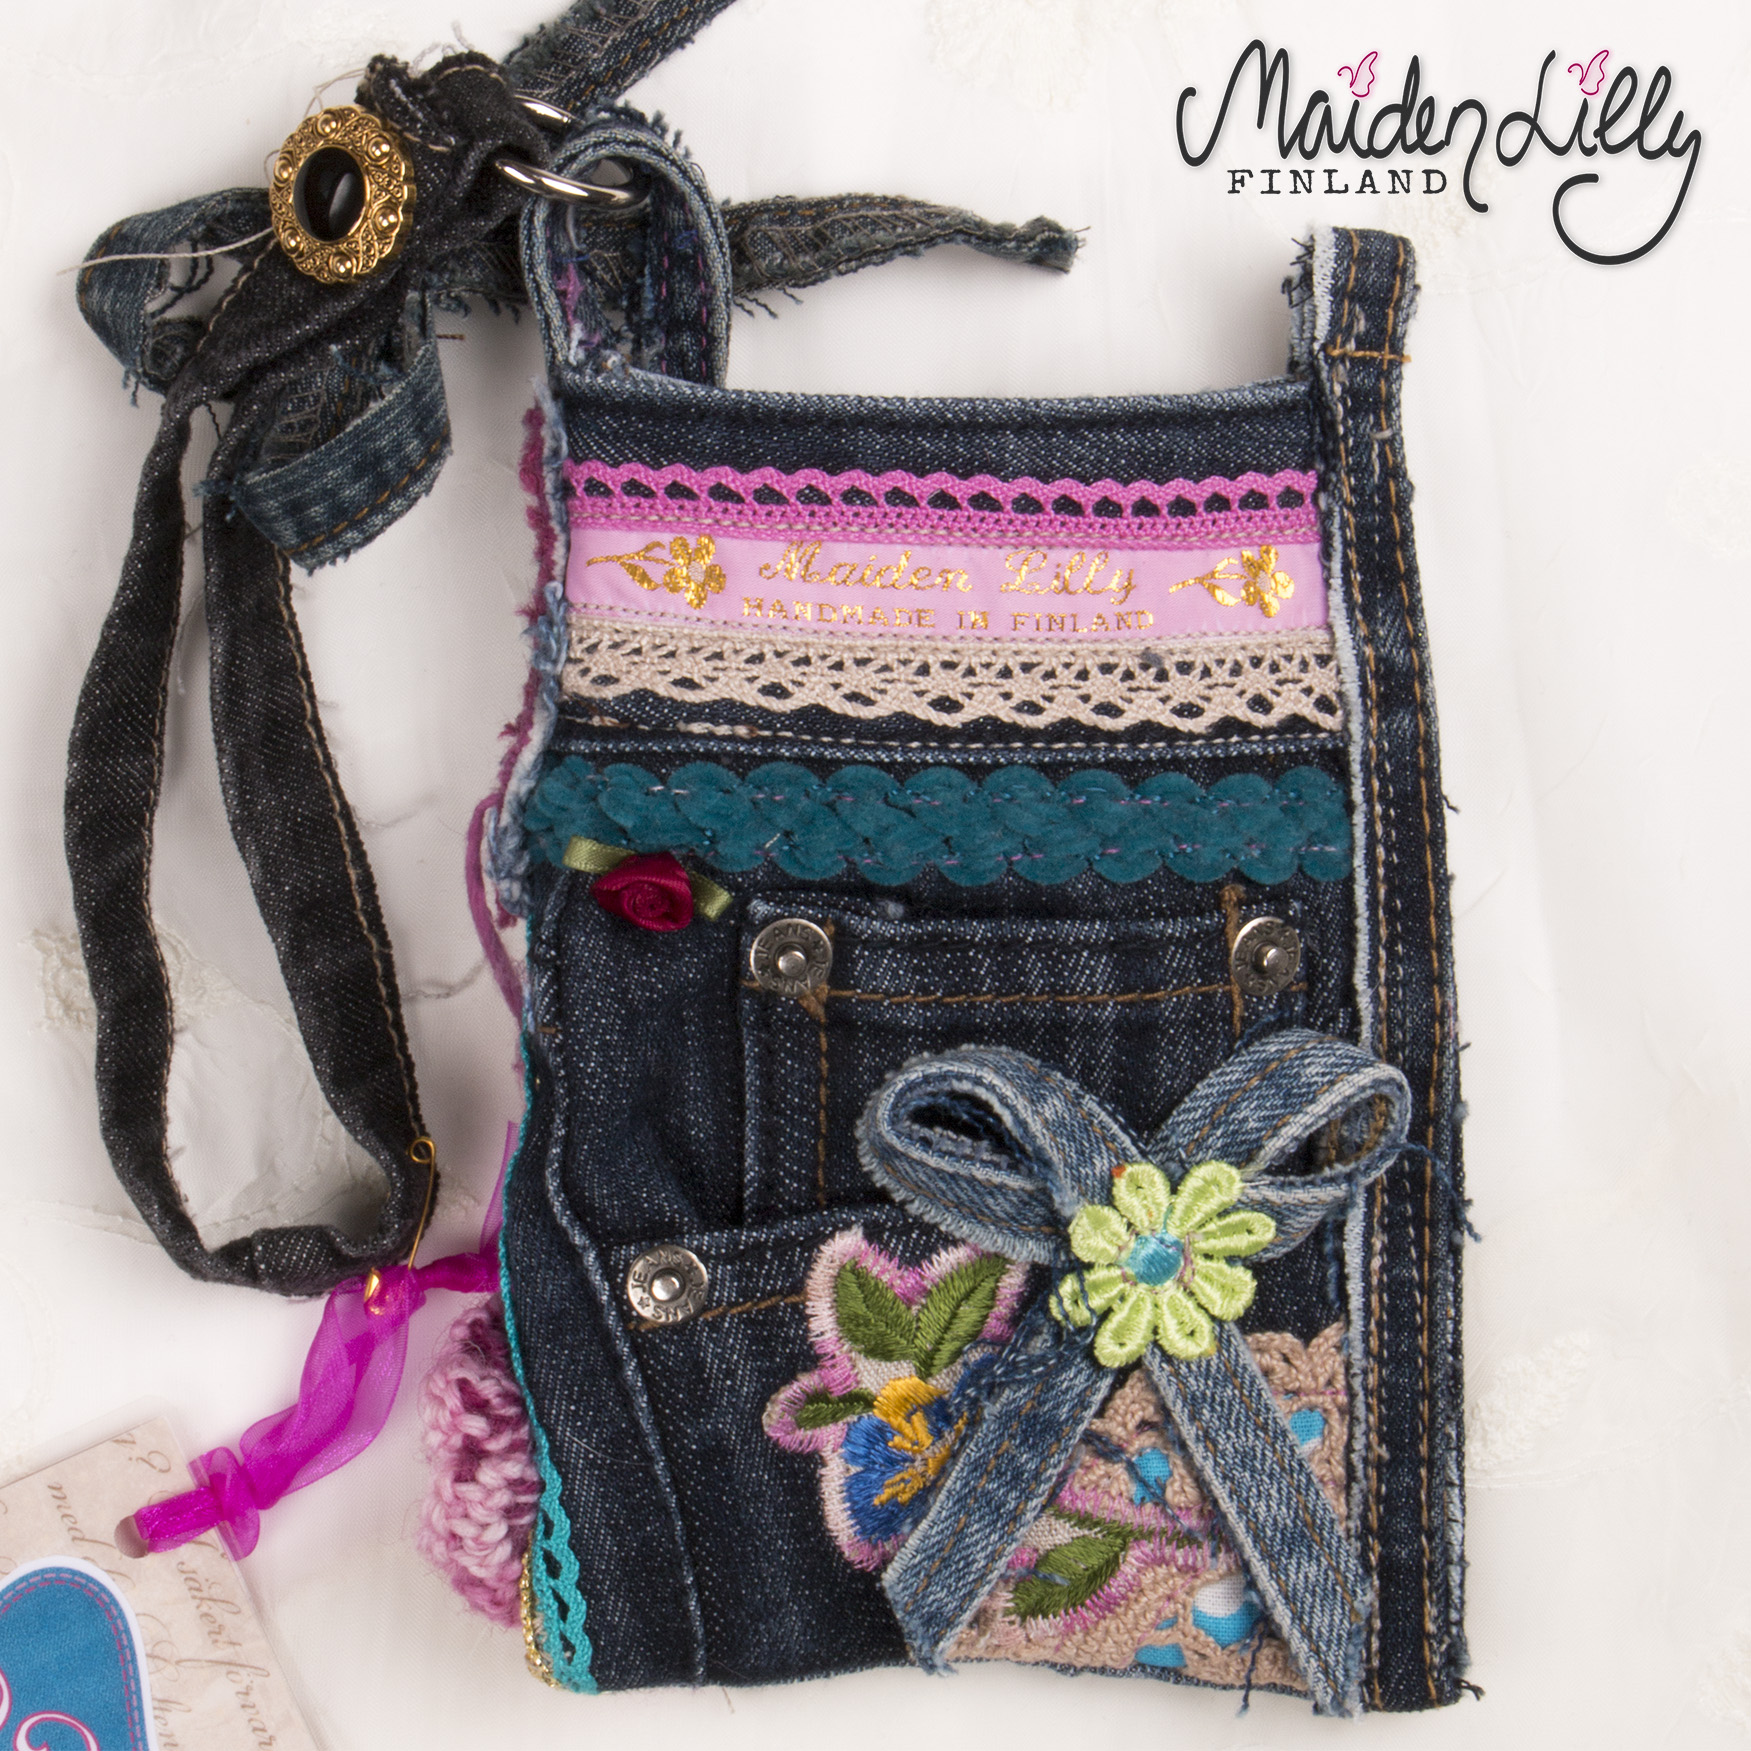 Maiden Lilly Finland Cell Bag